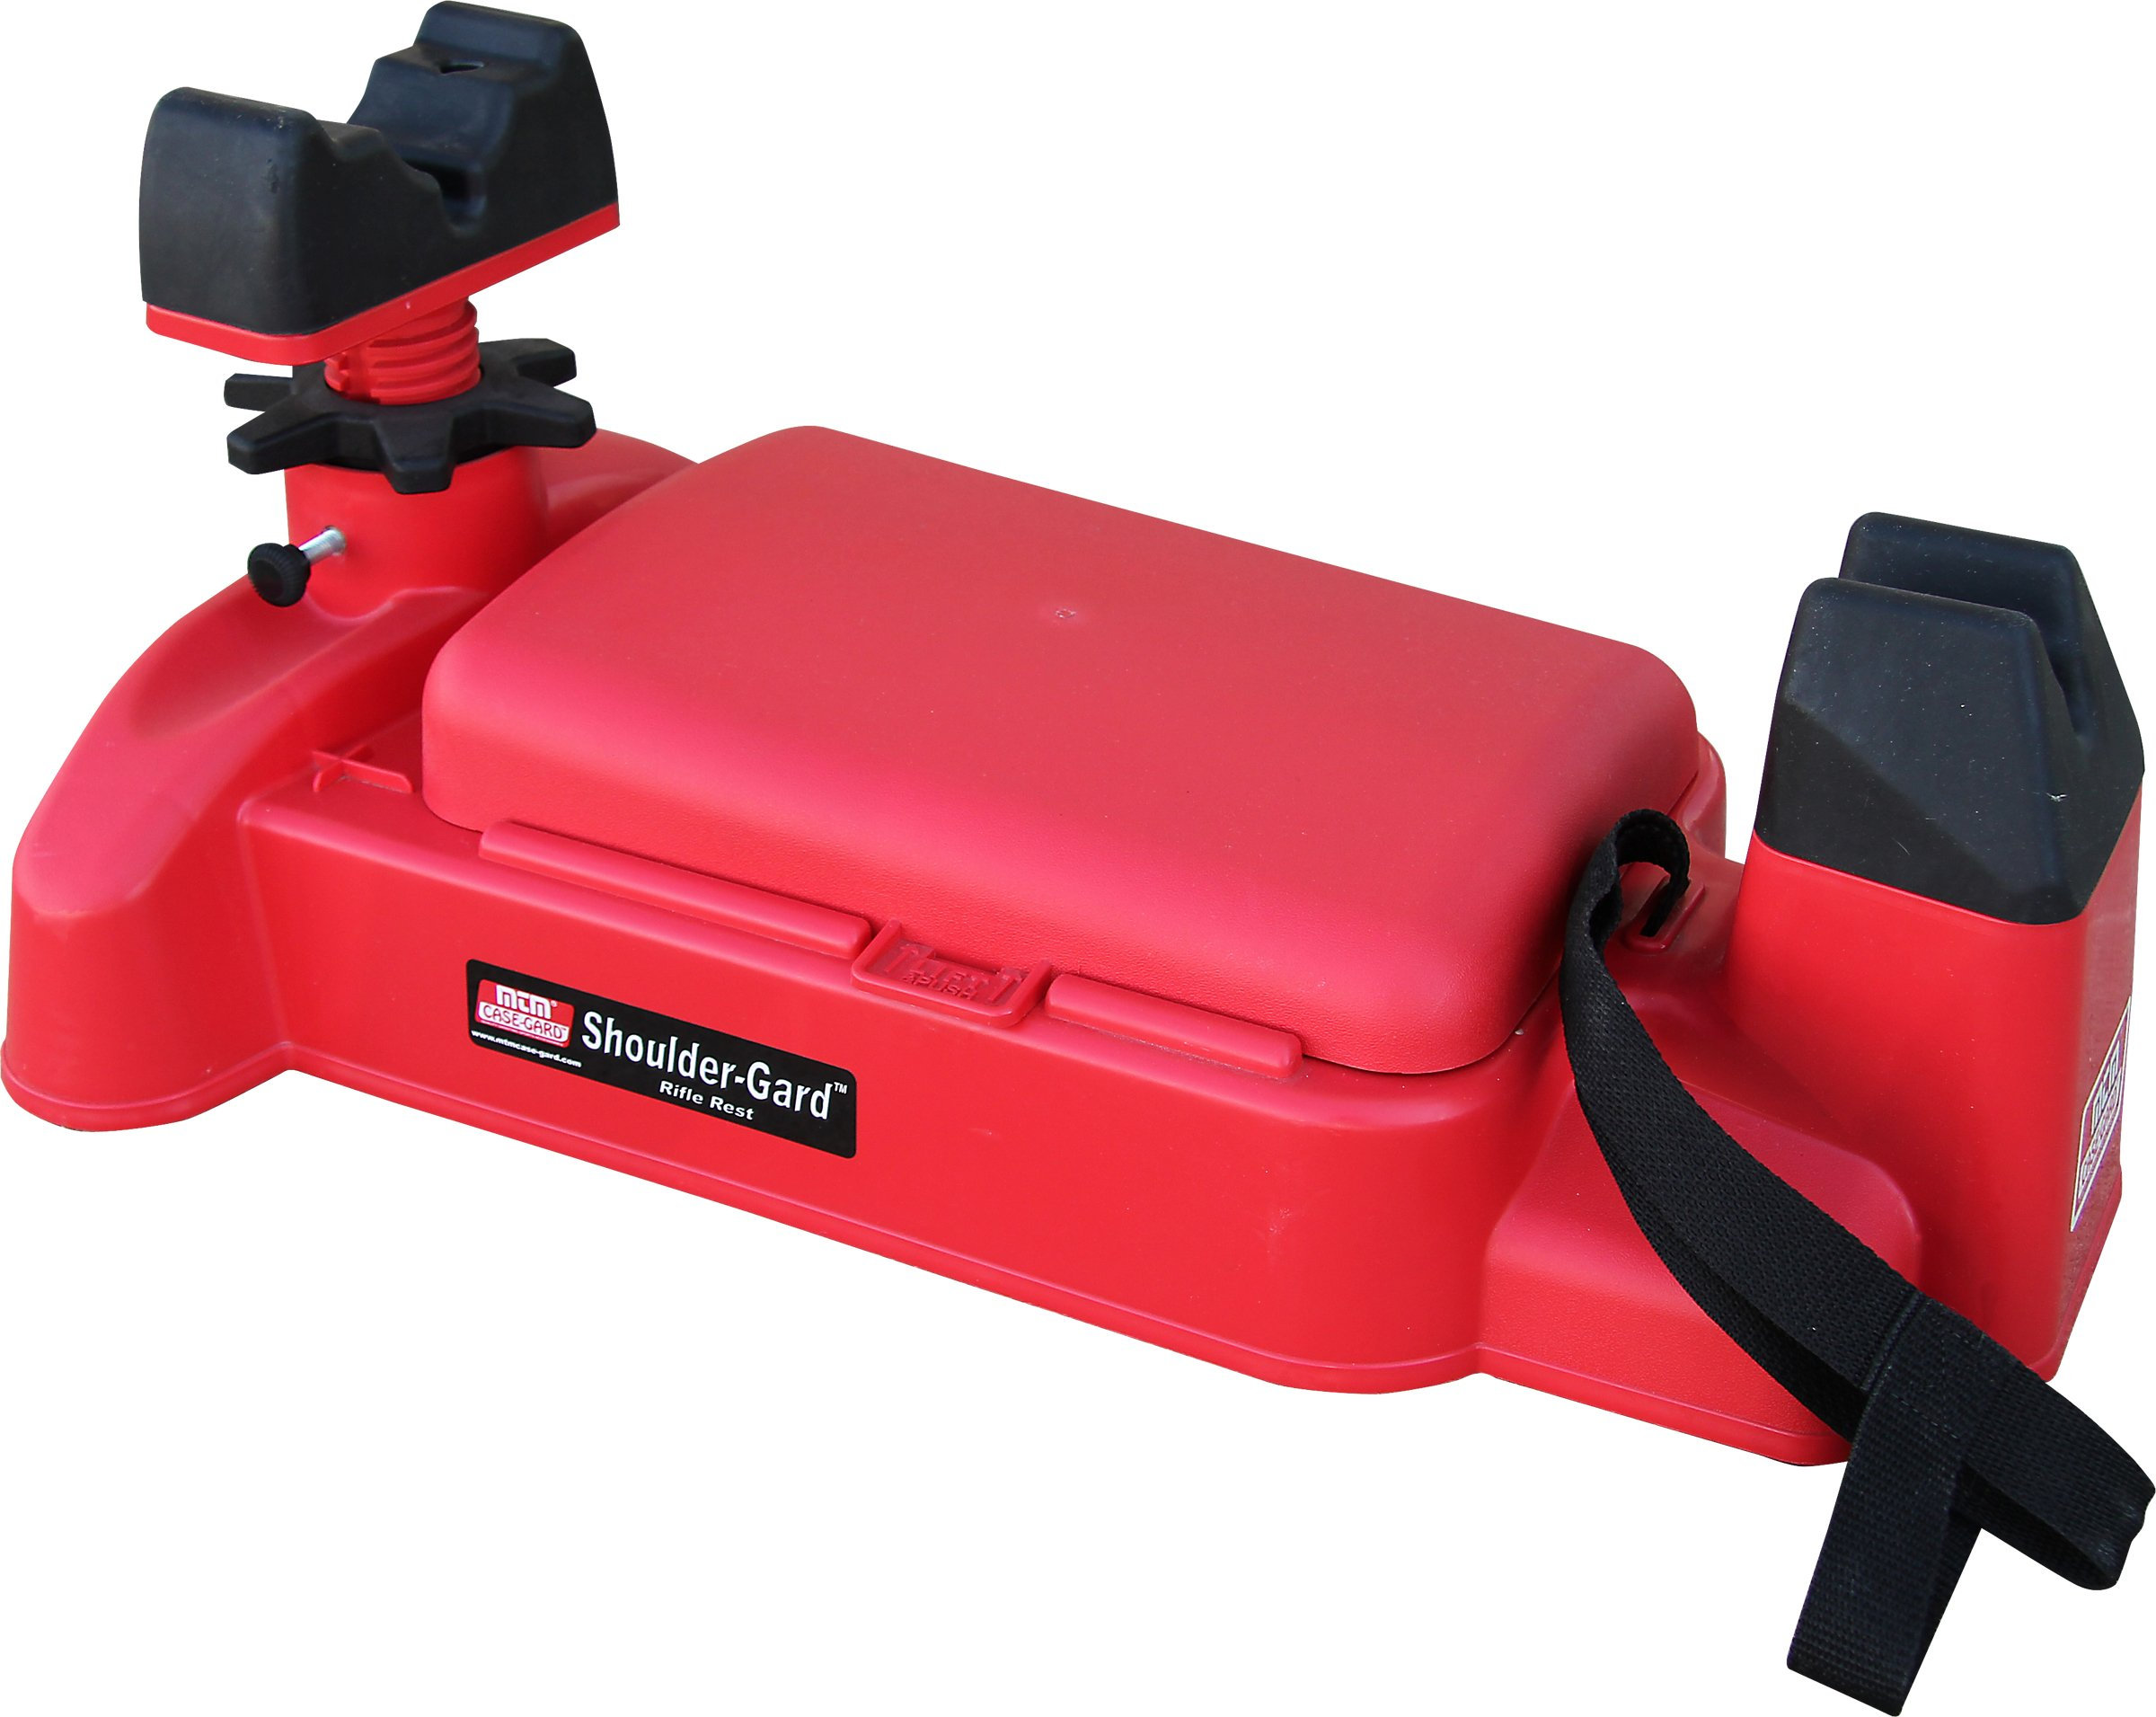 MTM  SGR-30 Shoulder-Gard Recoil Reducing Rifle Shooting Rest for Outdoor Range by MTM